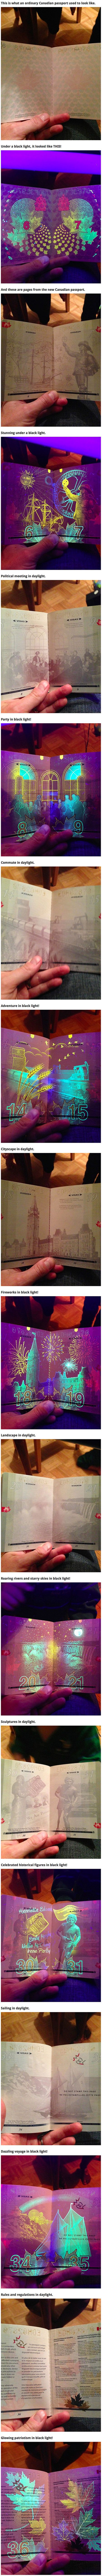 The Canadian passport has potentially earned the unexpected distinction of being the coolest passport to pull out at a rave. The pages of the new passport (released in mid-2013) are covered in fun and colorful UV-reactive images that can only be seen under a blacklight.